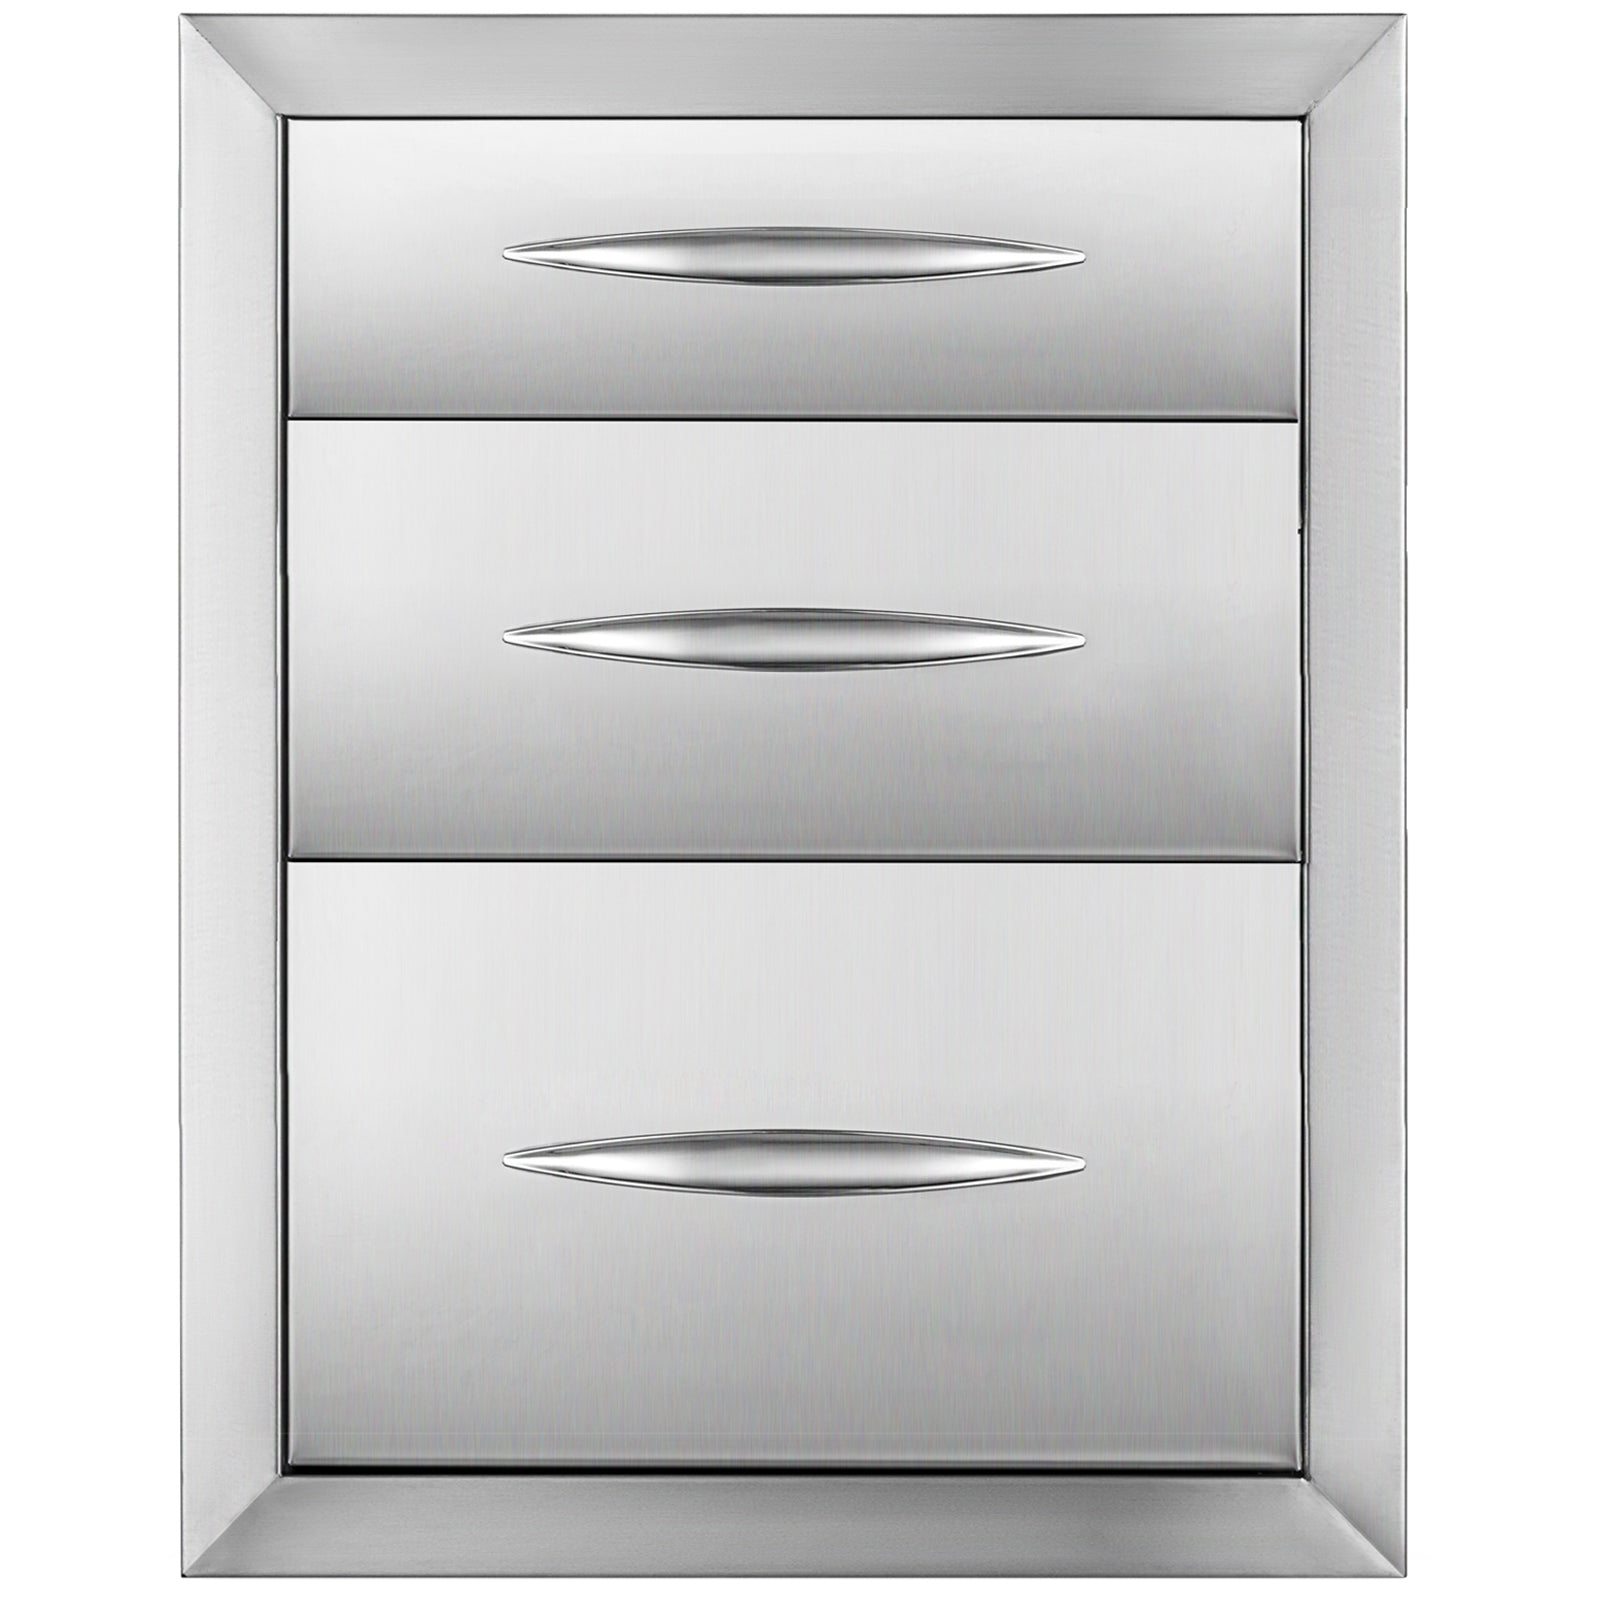 Stainless Steel 3 Chest Of Drawers W/ Handle 35*58cm Bbq Island Storage Cabinet